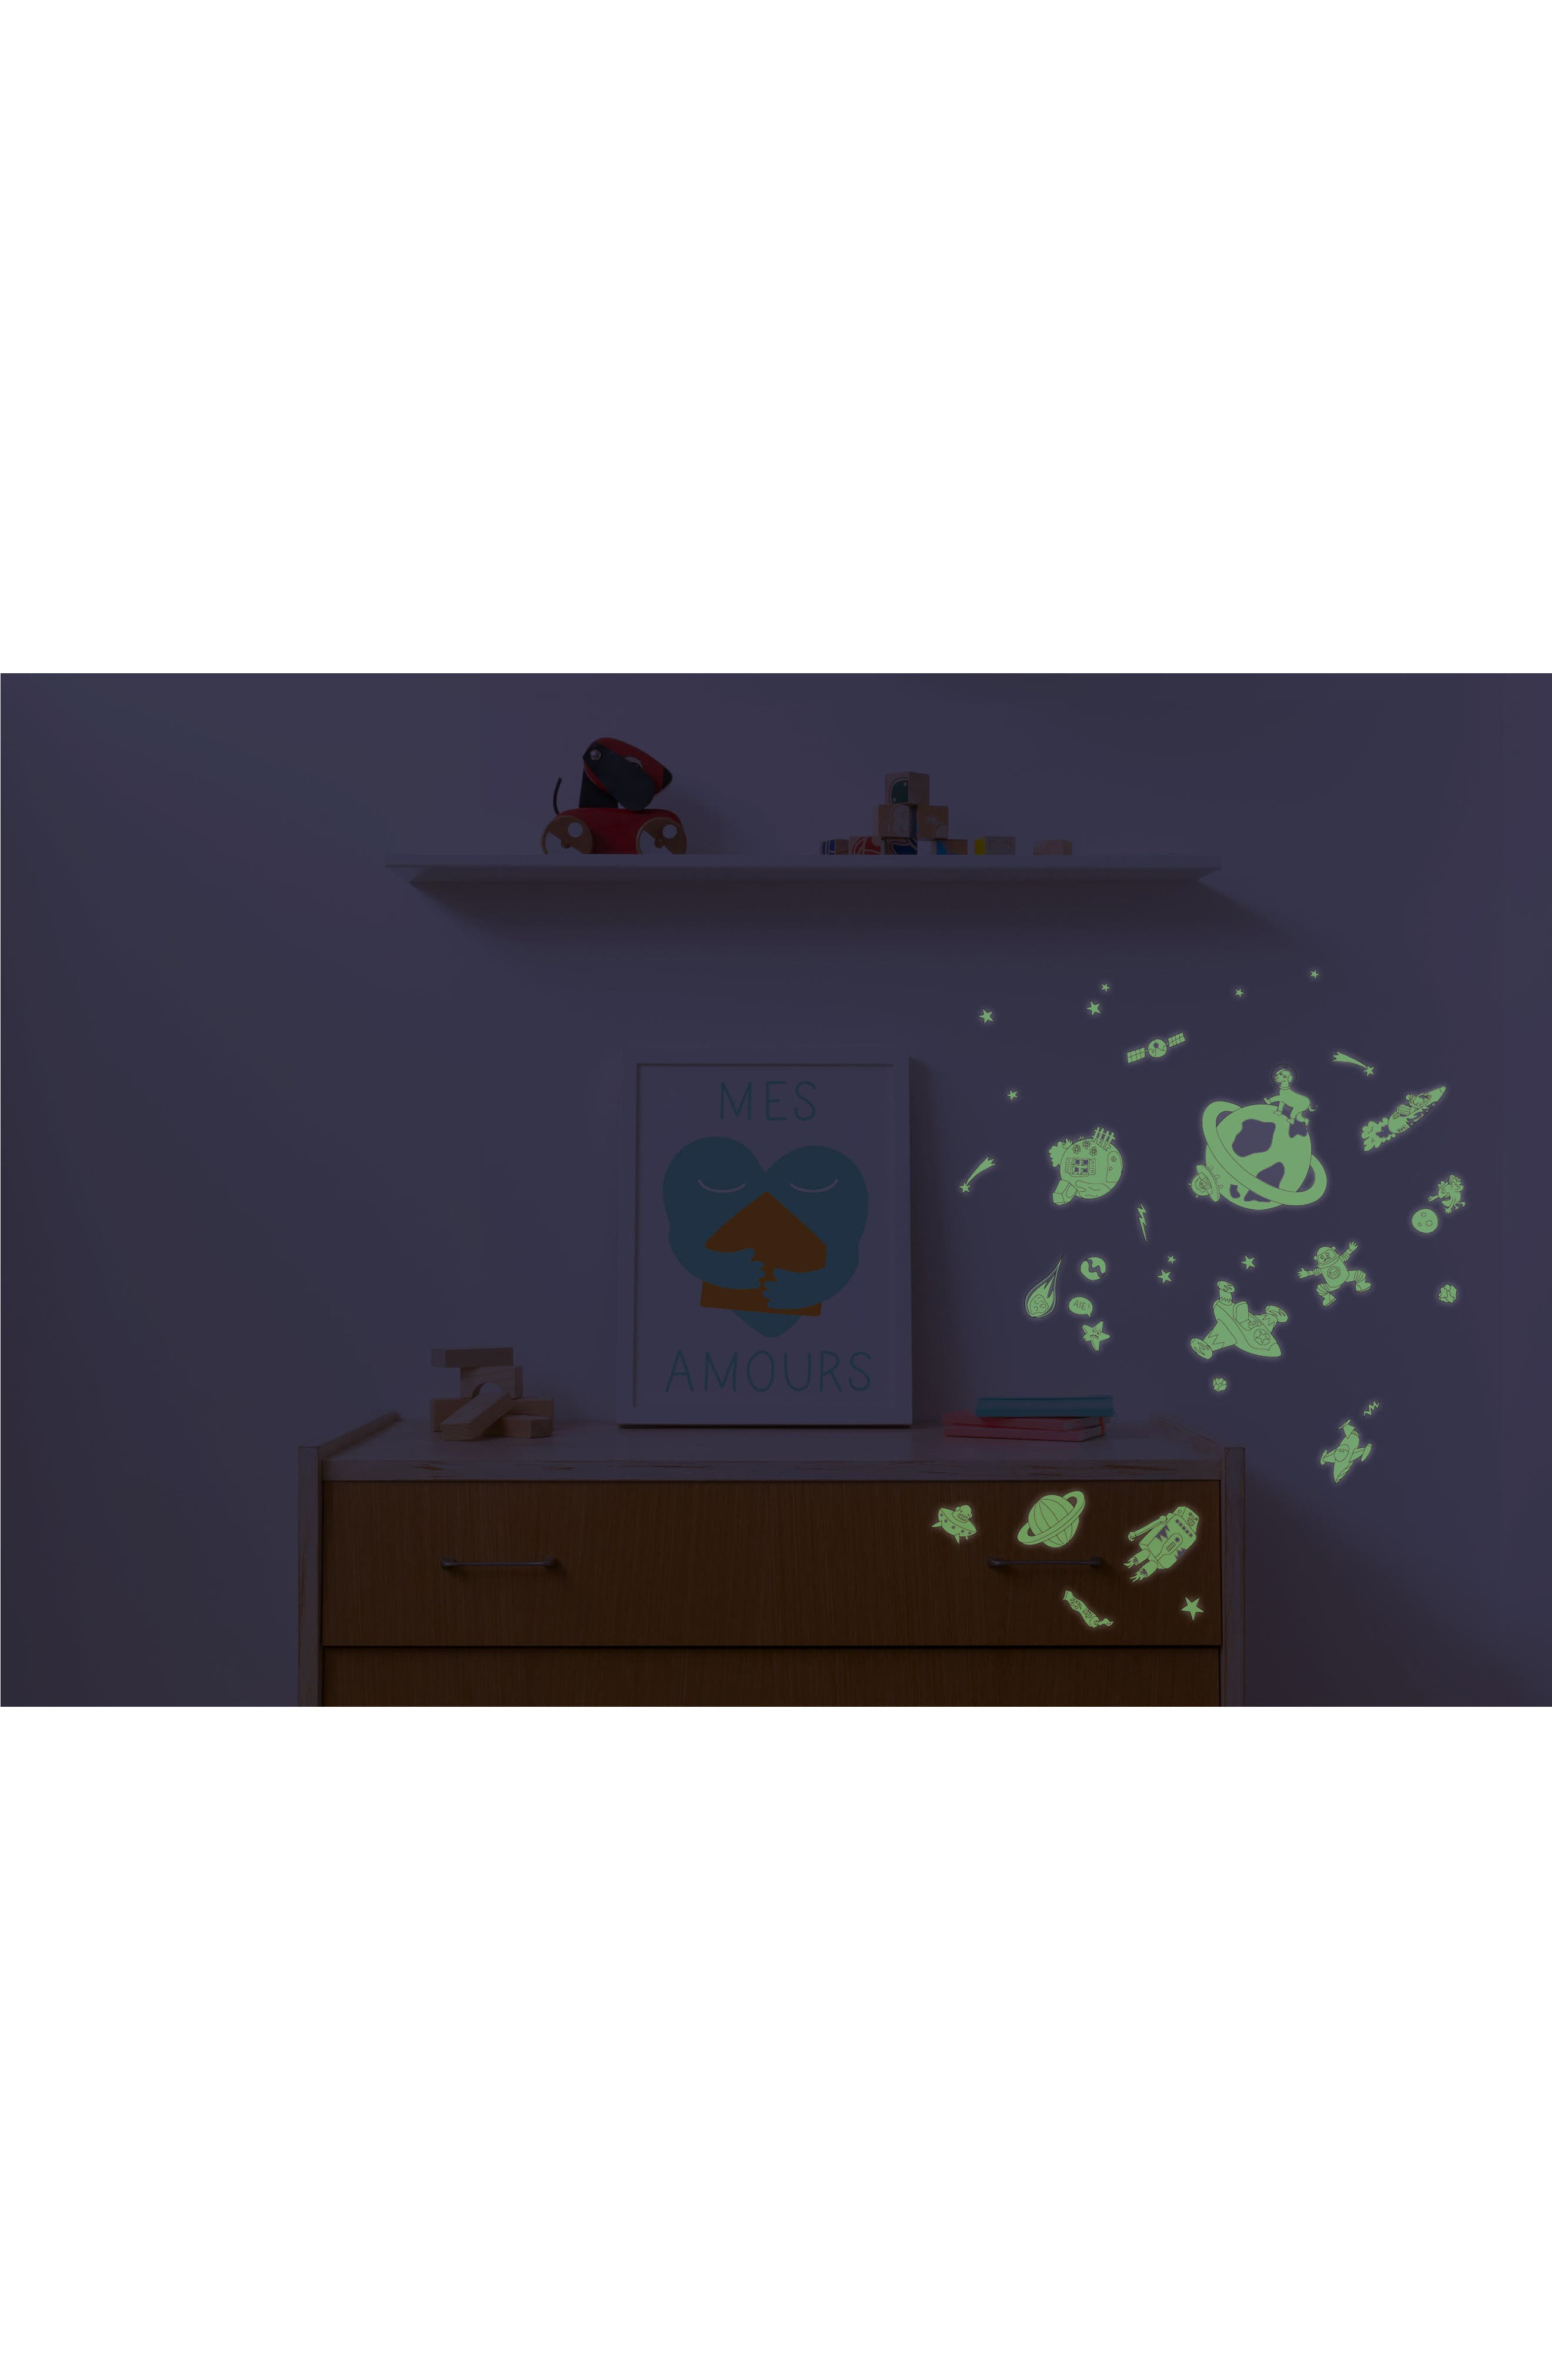 Set of 100 Cosmos Glow in the Dark Wall Stickers,                             Alternate thumbnail 2, color,                             100